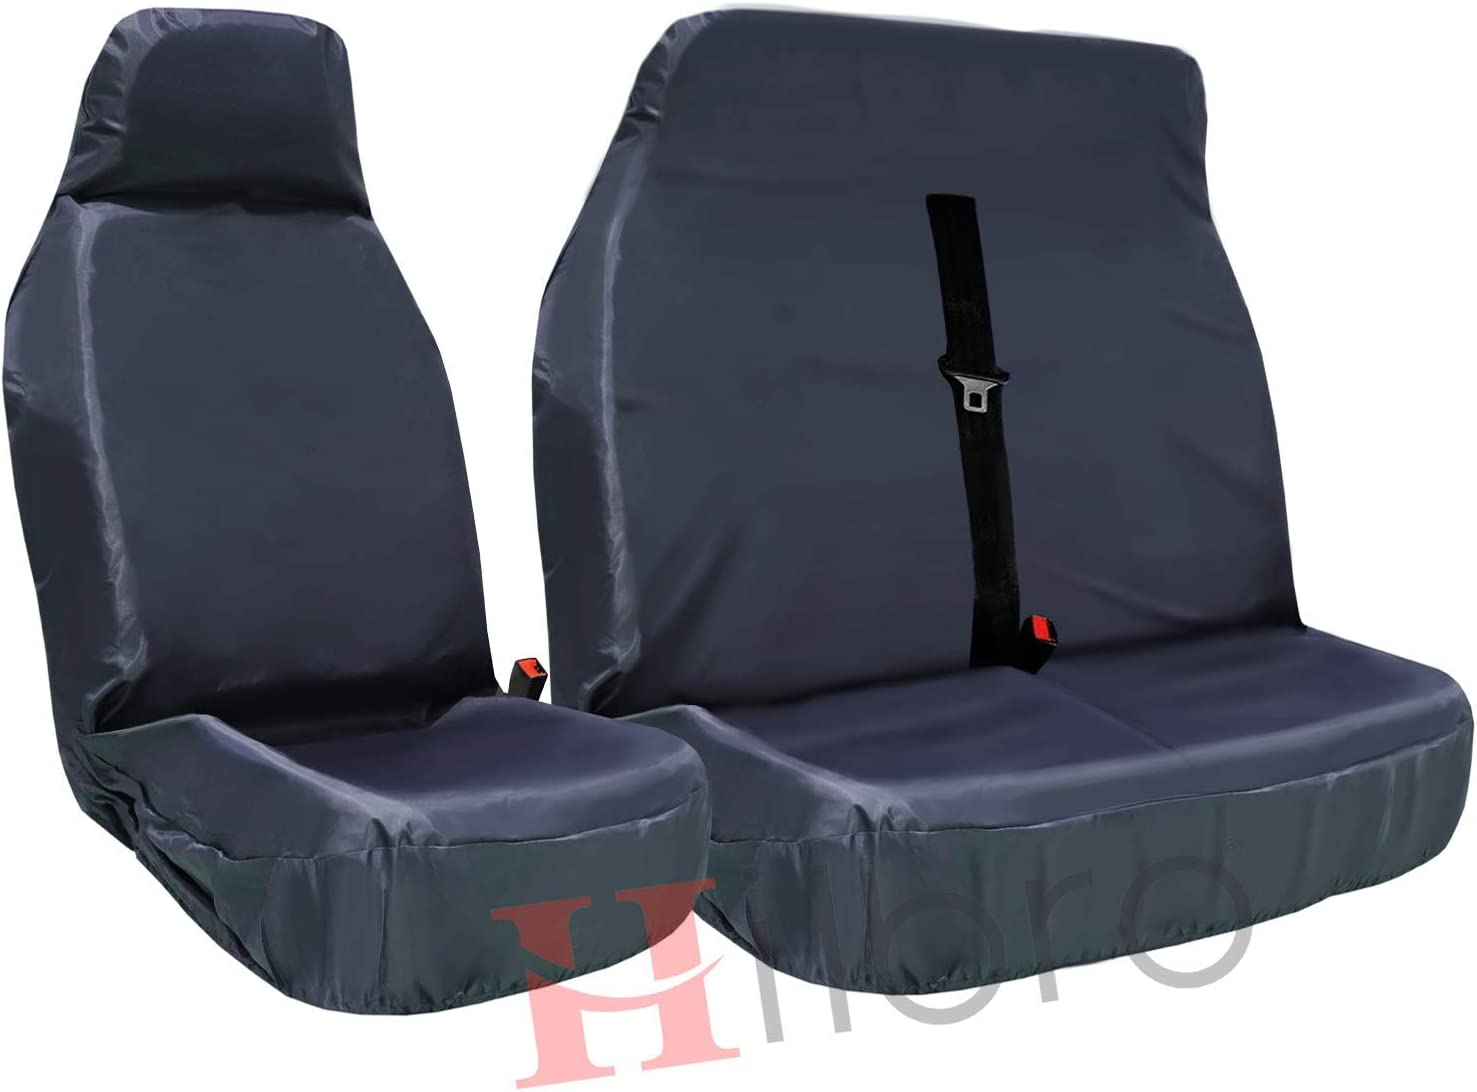 FORD COURIER ALL YEARS Single Heavy Duty Driver Captain Seat Cover Waterproof